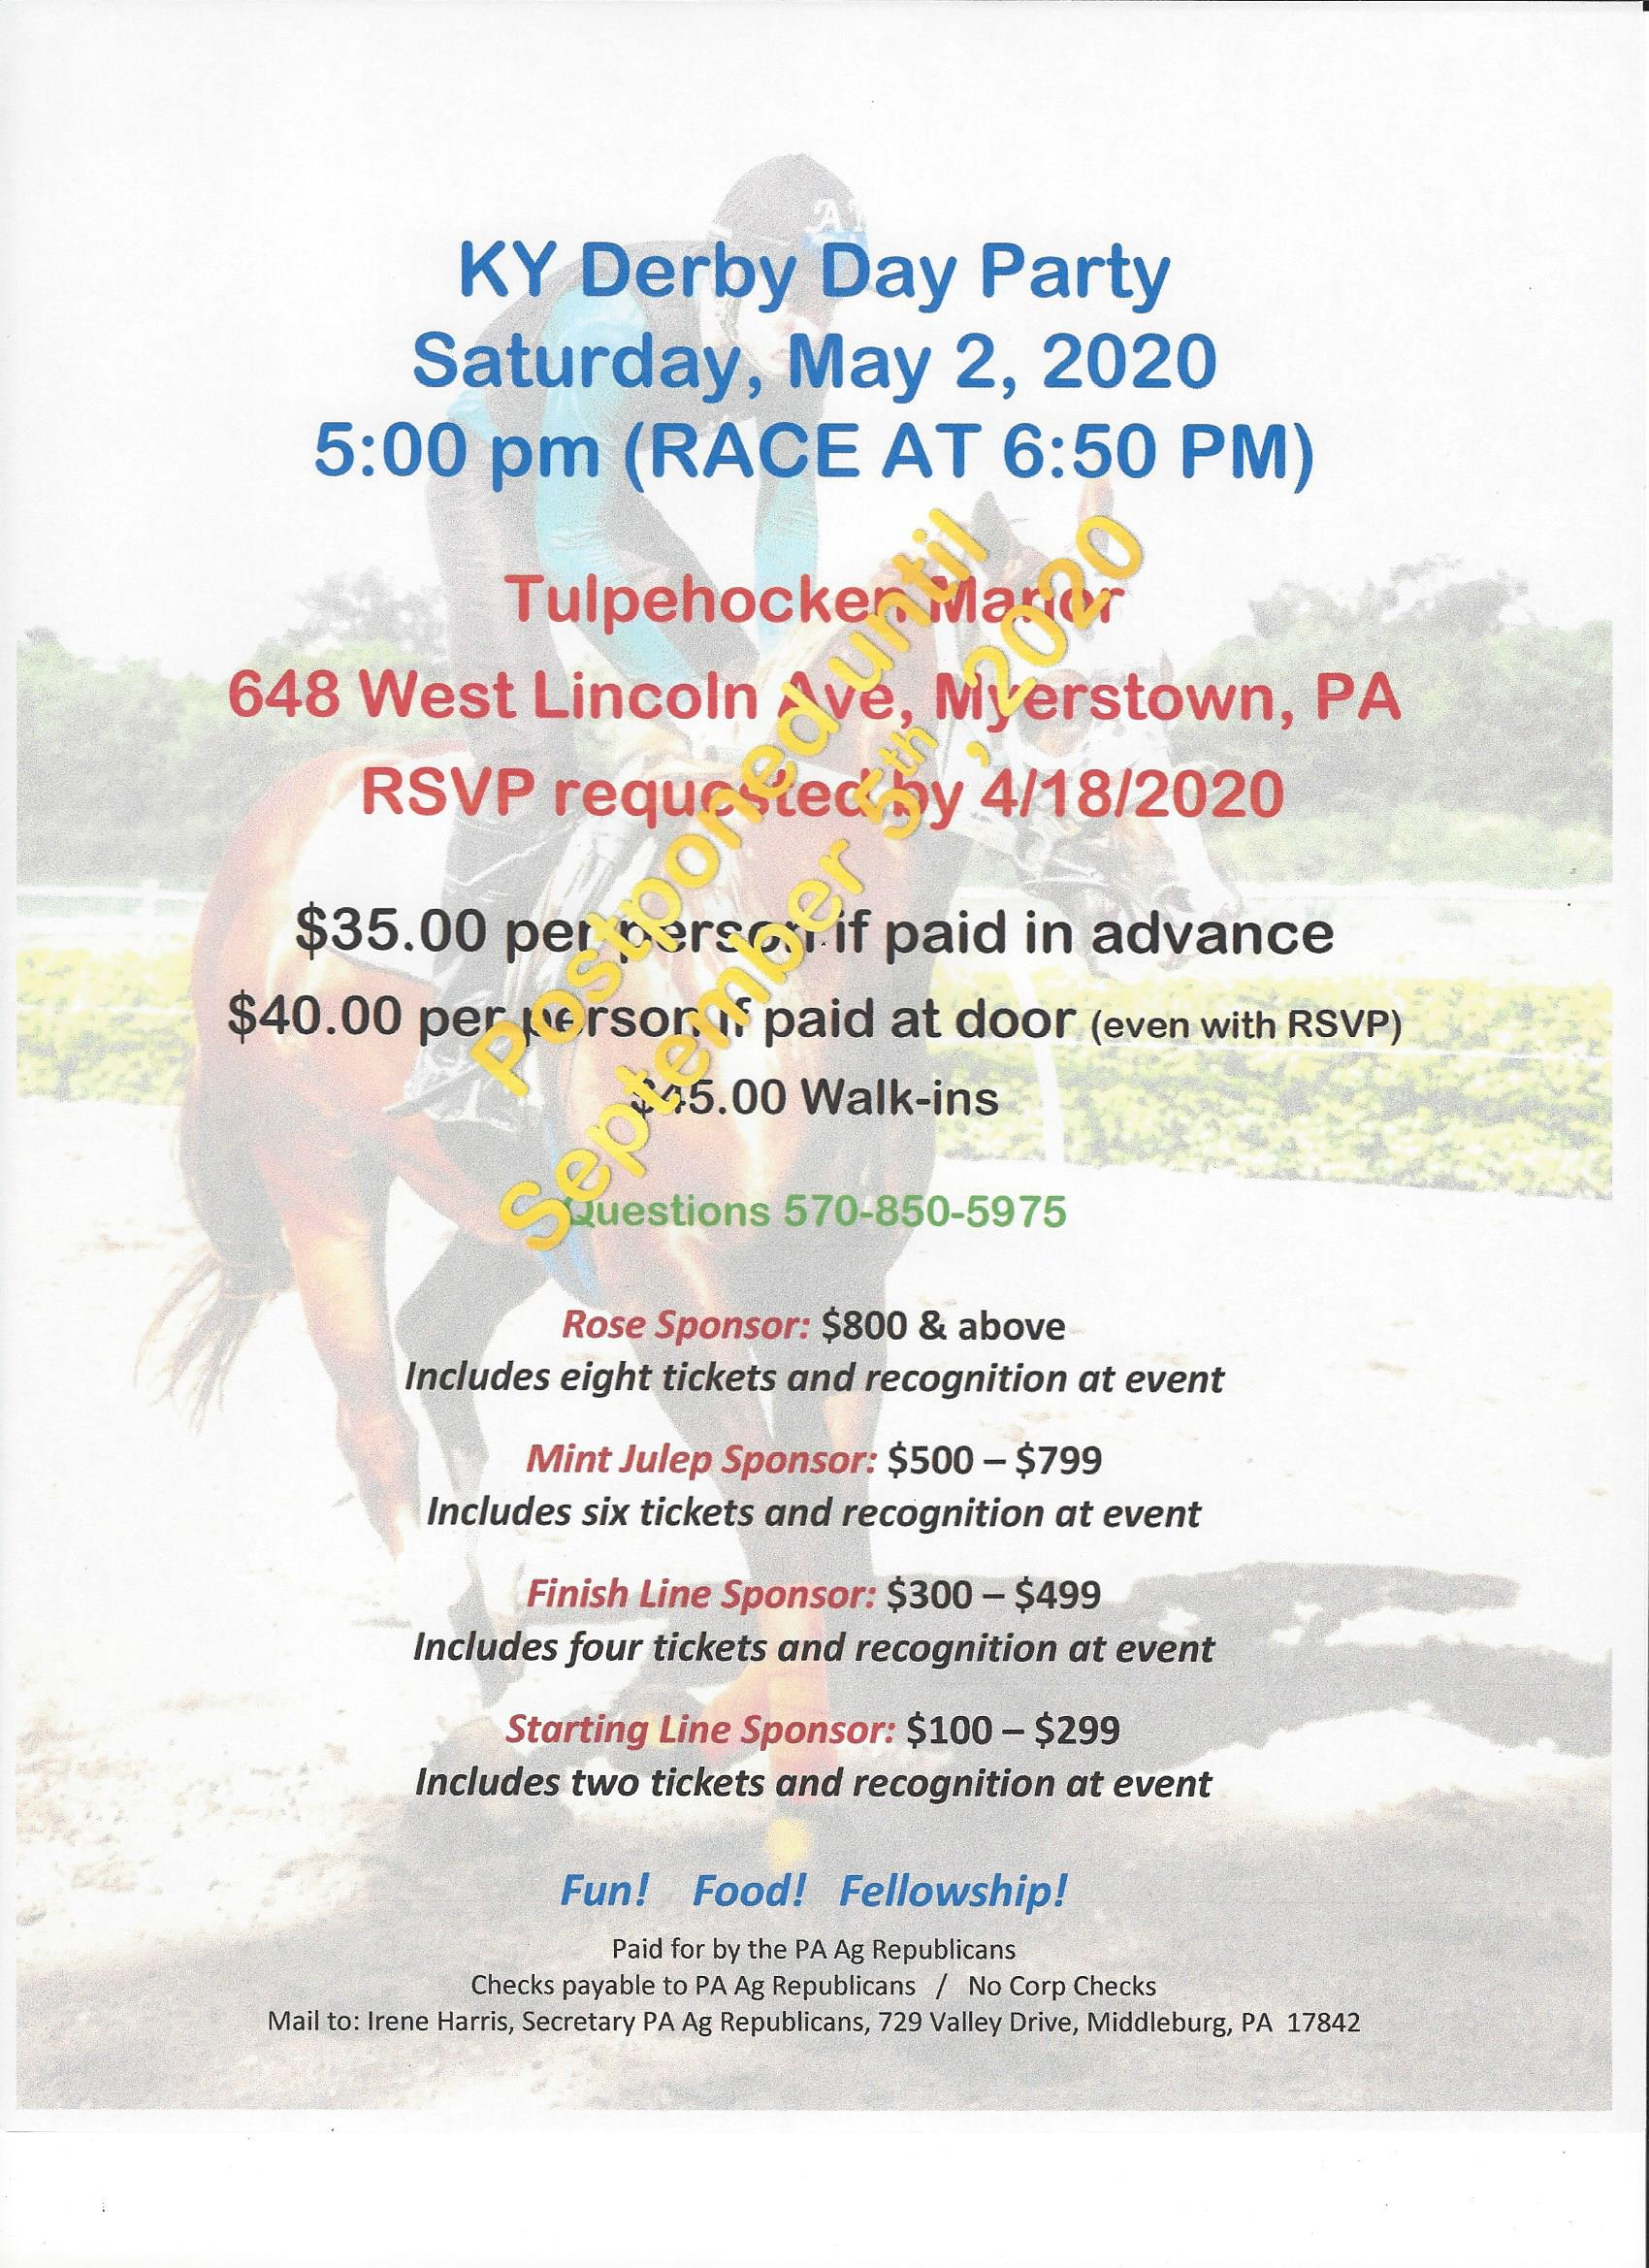 KY Derby Day Party Invite 2020 -postponed